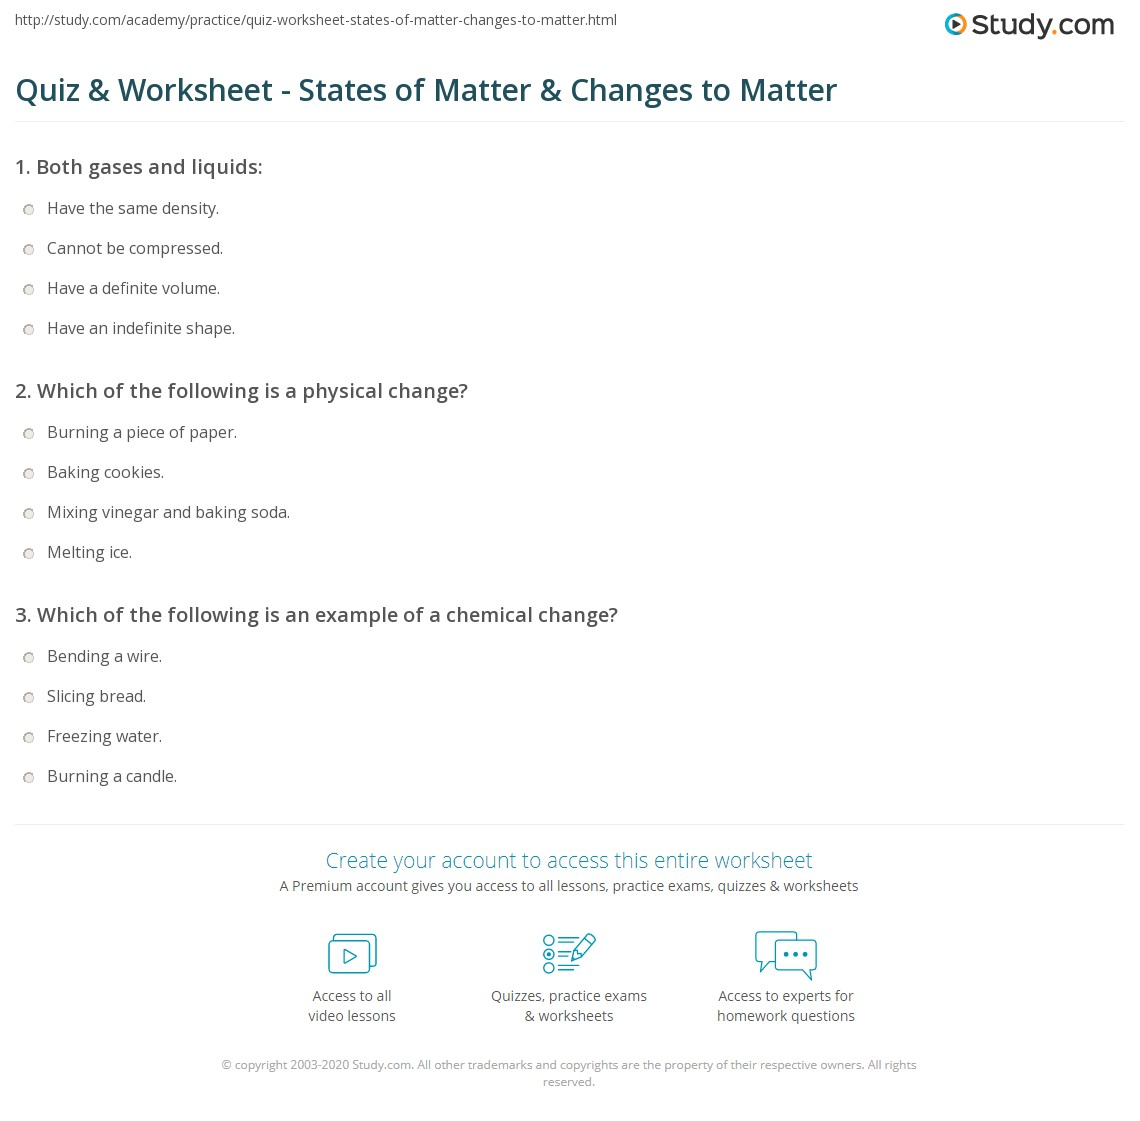 Printables States Of Matter Worksheet High School quiz worksheet states of matter changes to study com print and chemical versus physical worksheet